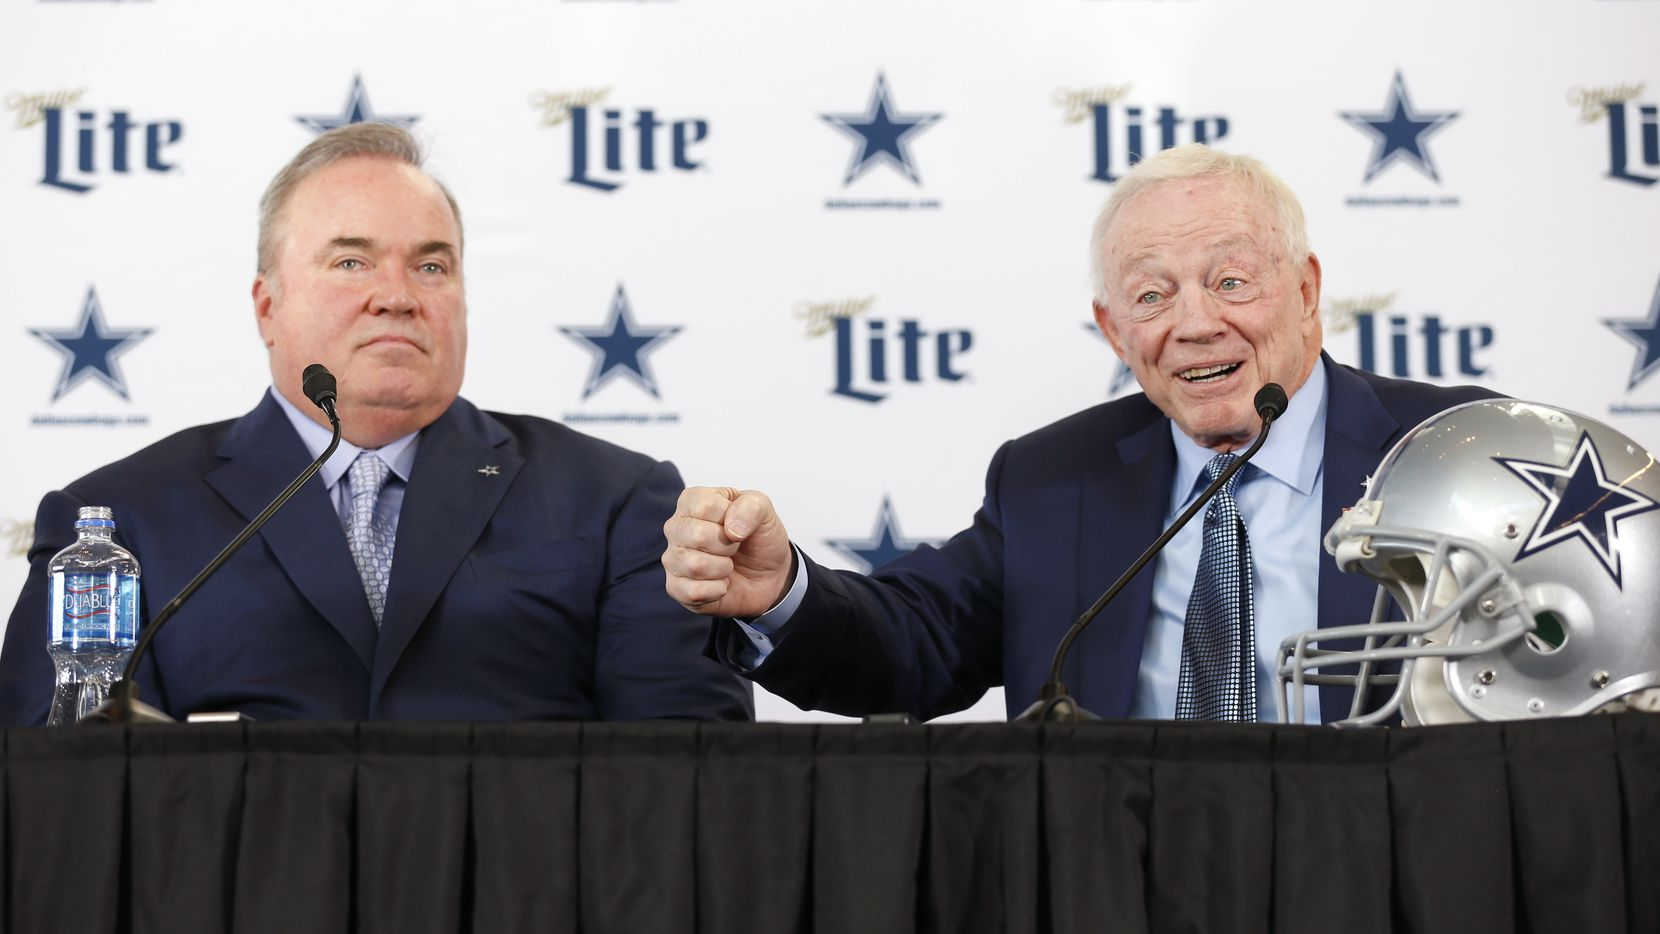 Dallas Cowboys owner and general manager Jerry Jones  tells a story about the interview process as newly hired Dallas Cowboys head coach Mike McCarthy looks on during a press conference in the Ford Center at The Star in Frisco, on Wednesday, January 8, 2020.